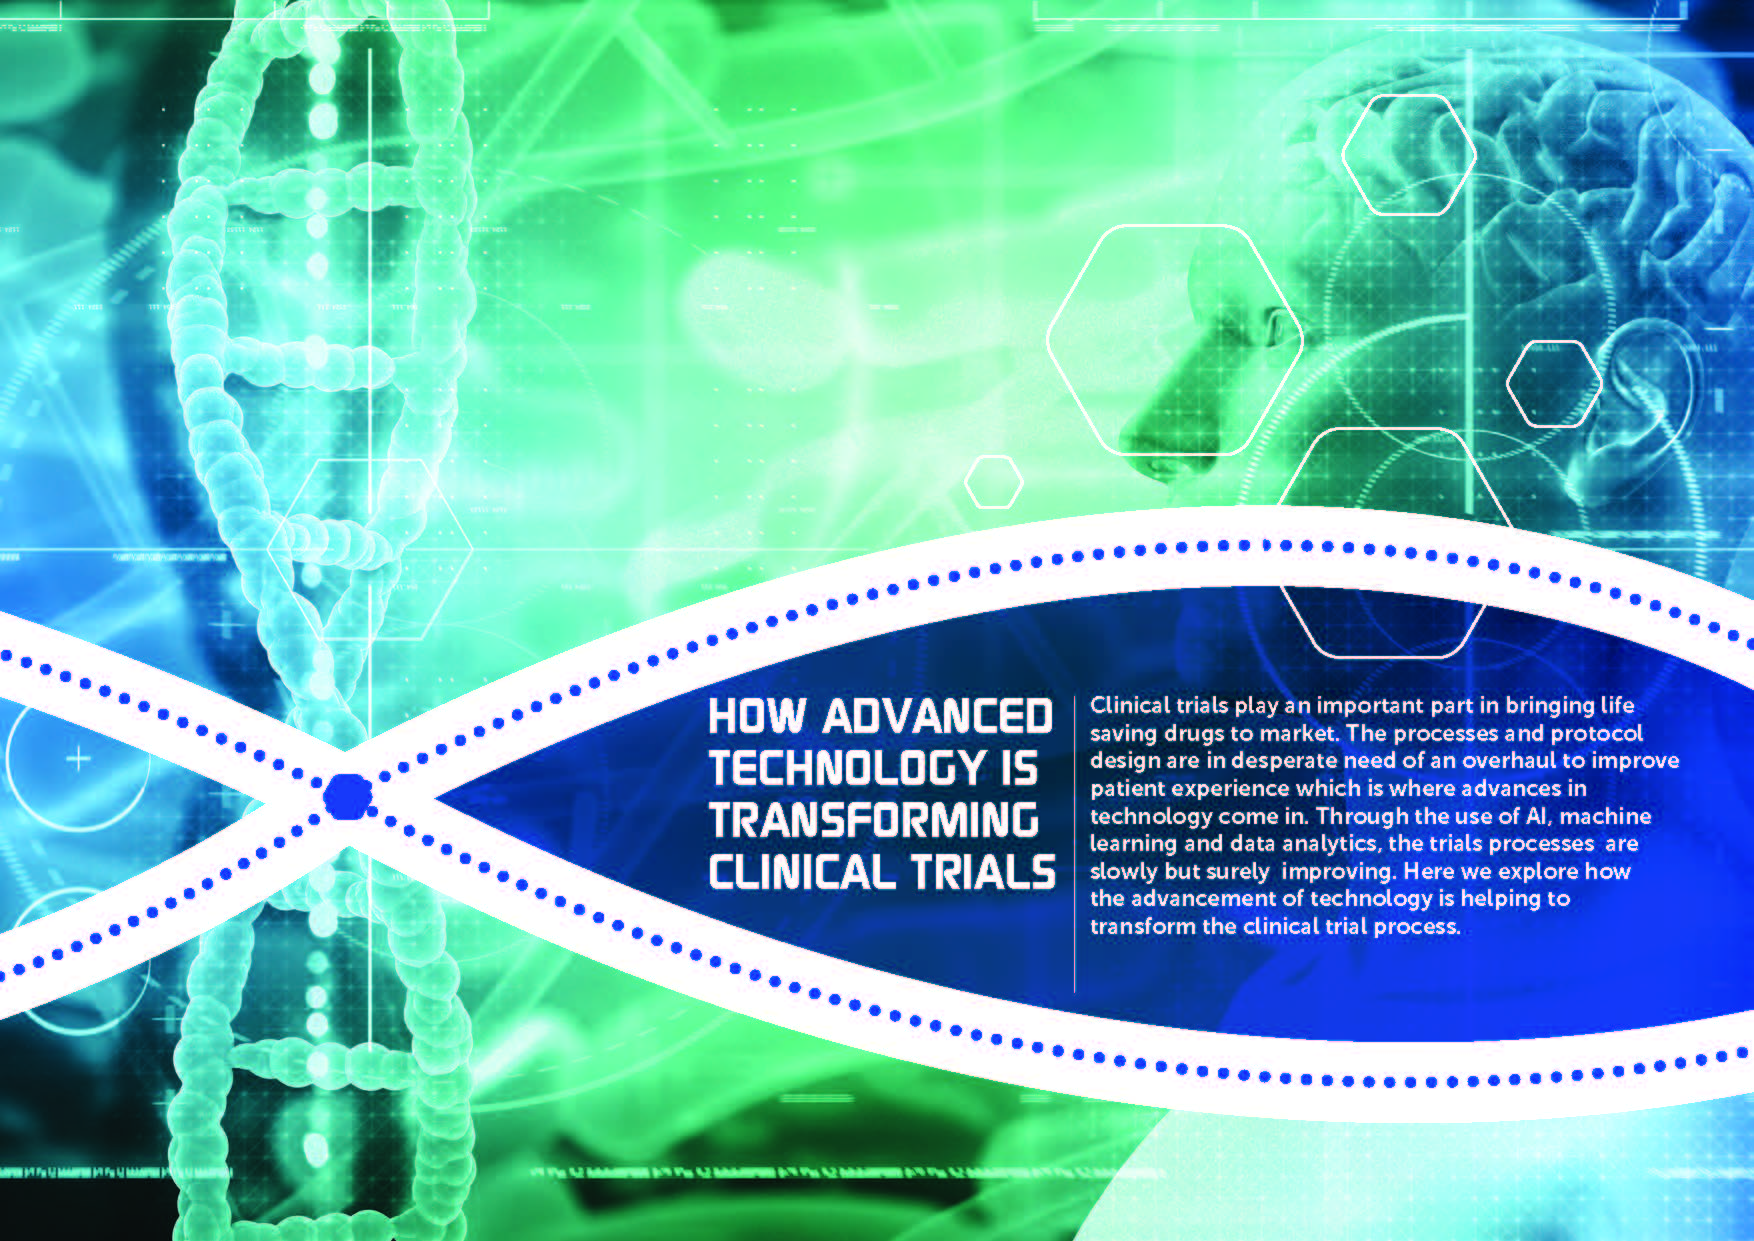 Download the Article - How Advanced Technology Is Transforming Clinical Trials - spex